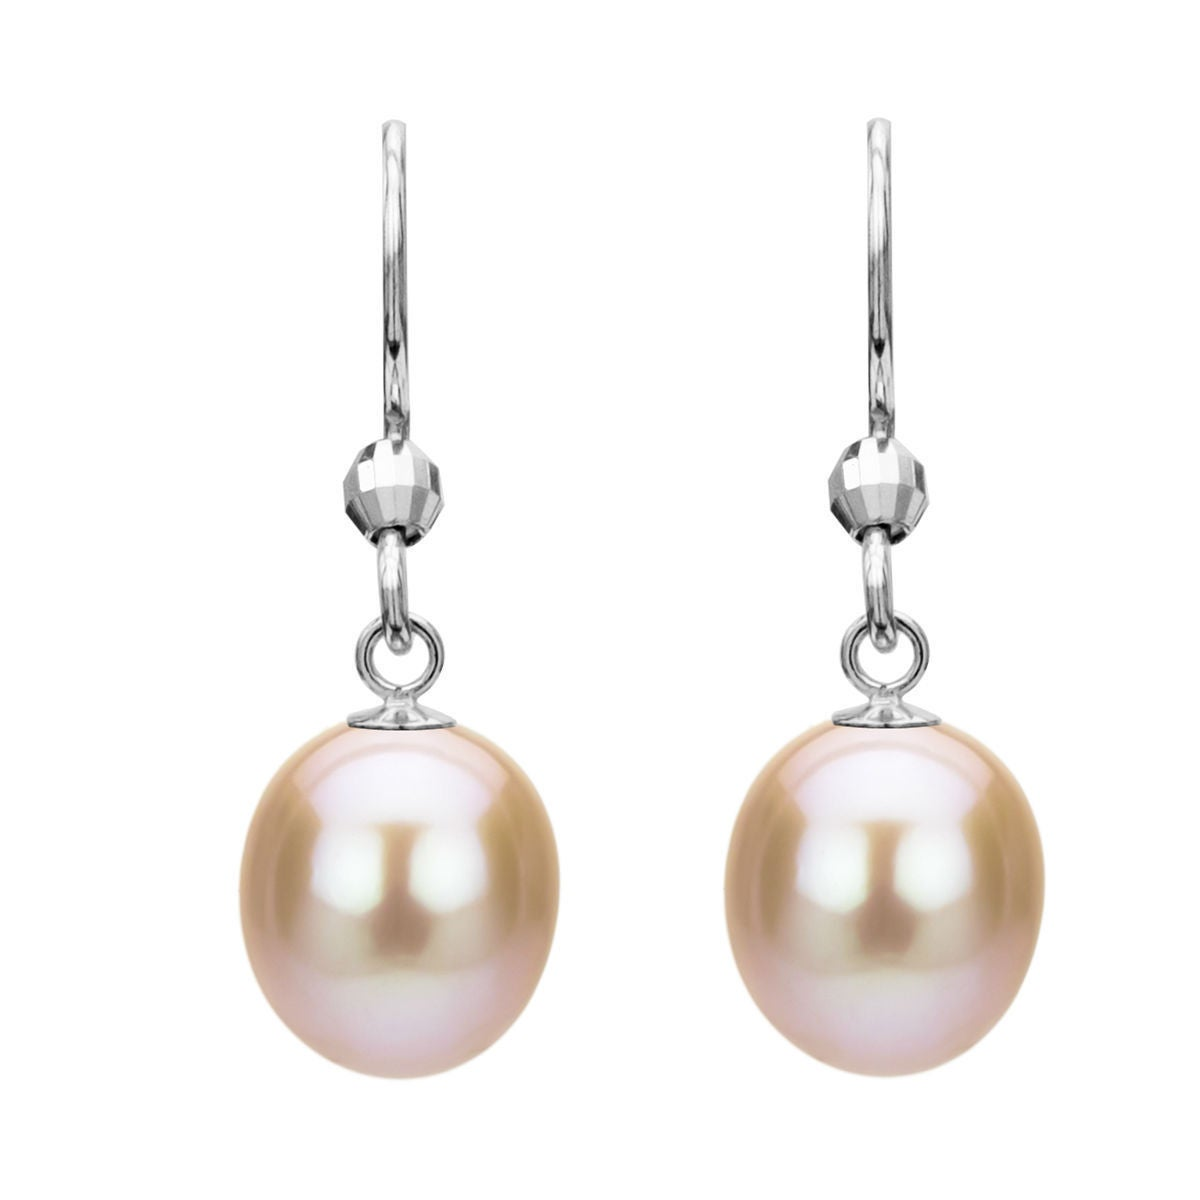 Davonna Sterling Silver Pink Freshwater Pearl Earrings 10 11 Mm